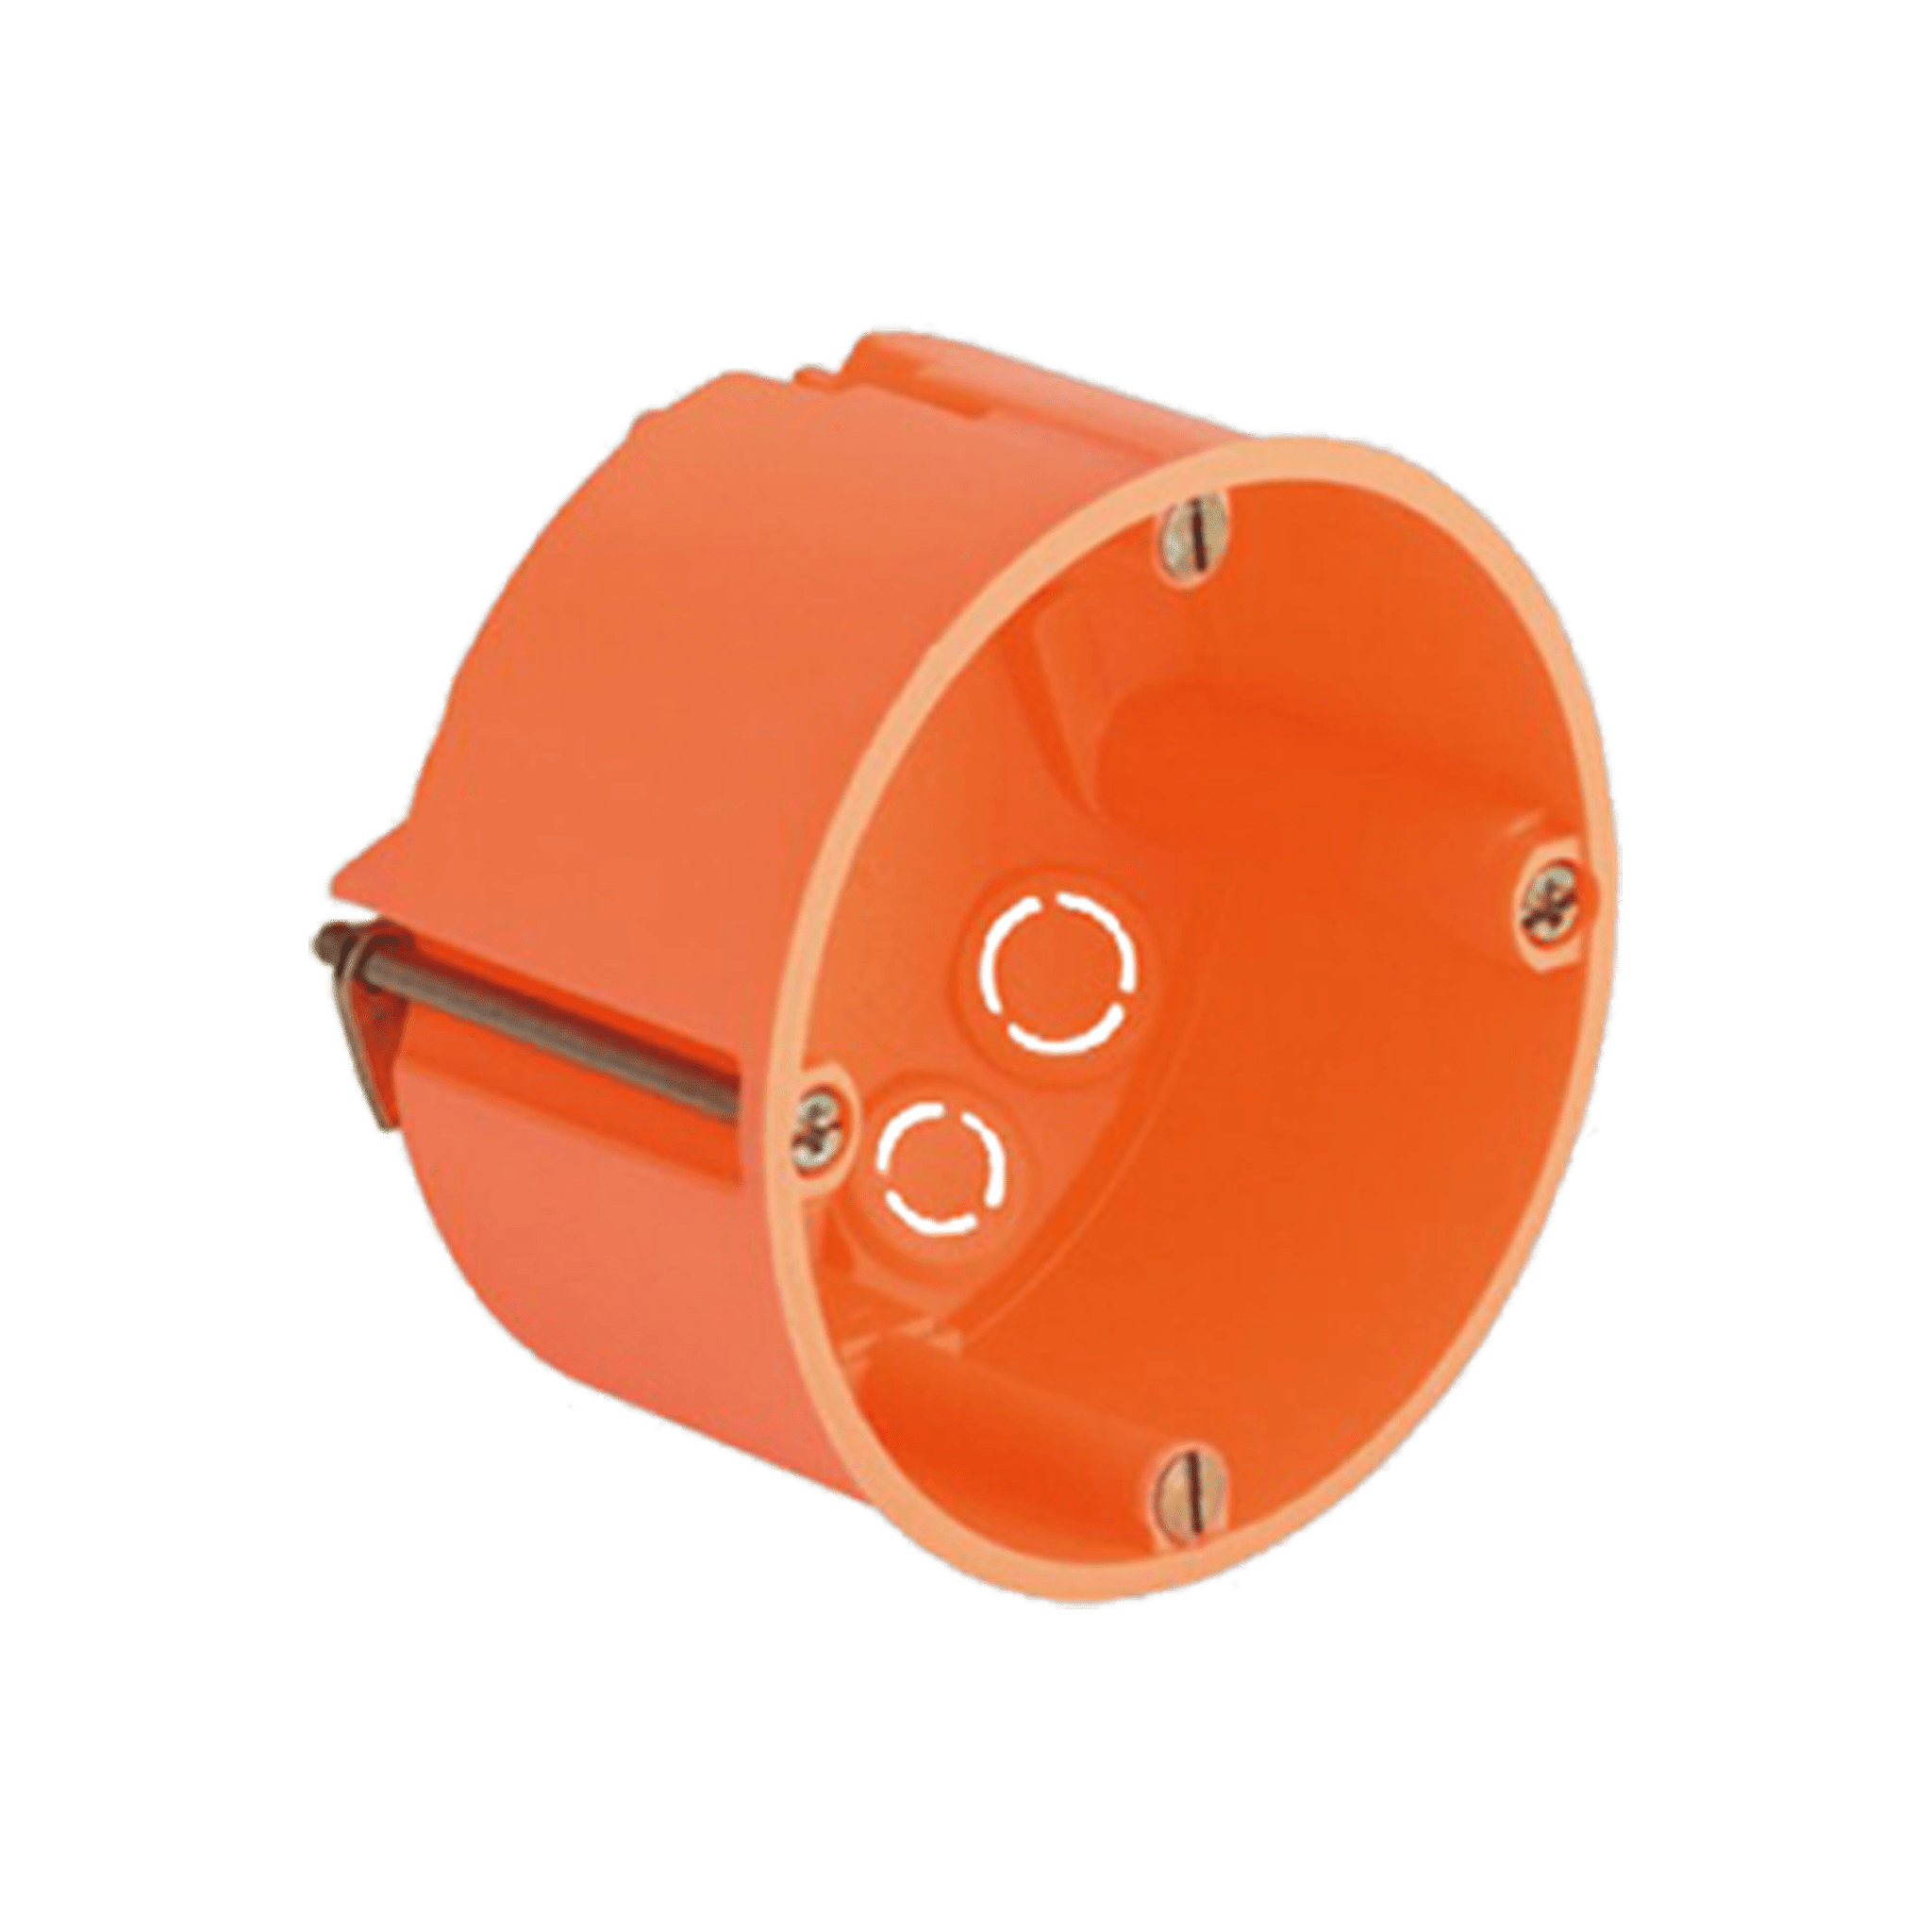 WB45S/FG - Flush mount box for 45 x 45 mm wall panel - Hollow wall